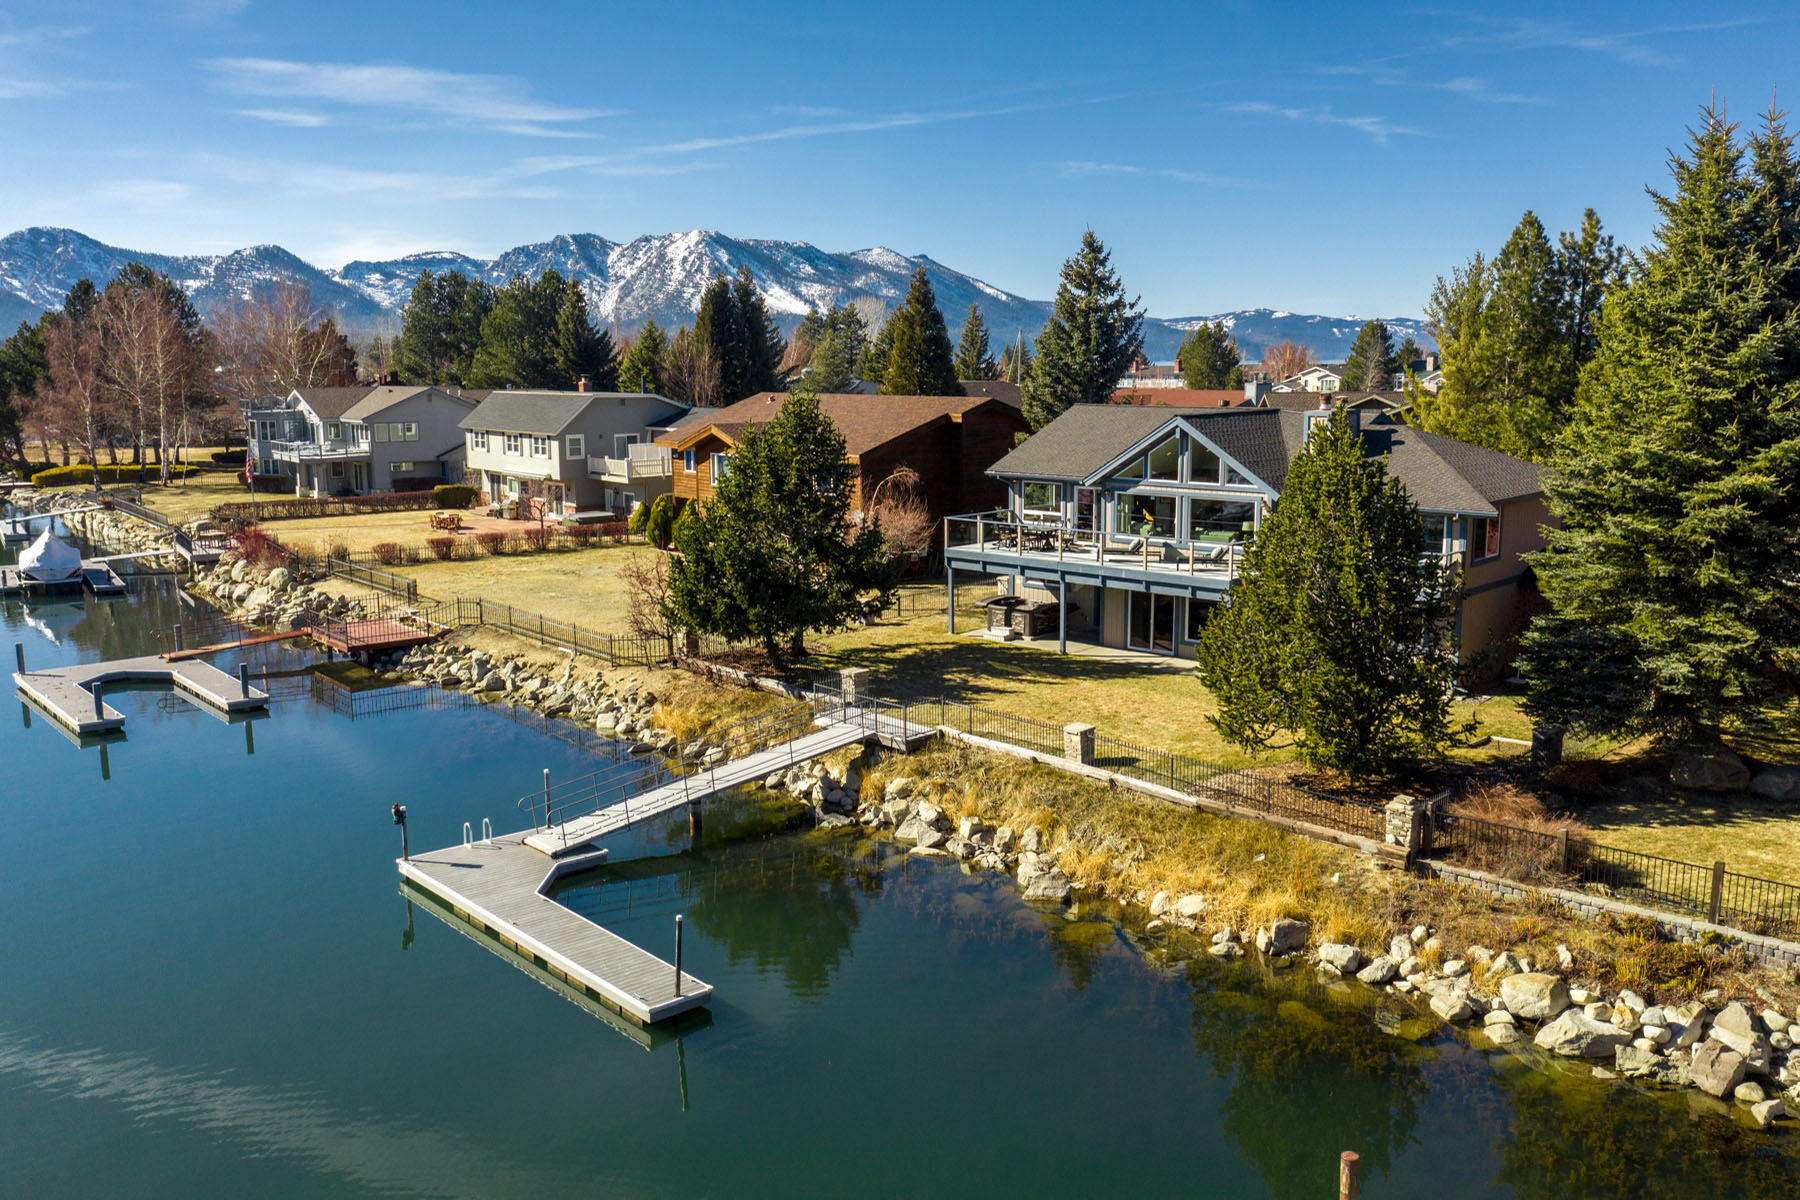 Single Family Homes for Active at On the Water Tahoe Style 2188 White Sands Drive South Lake Tahoe, California 96150 United States